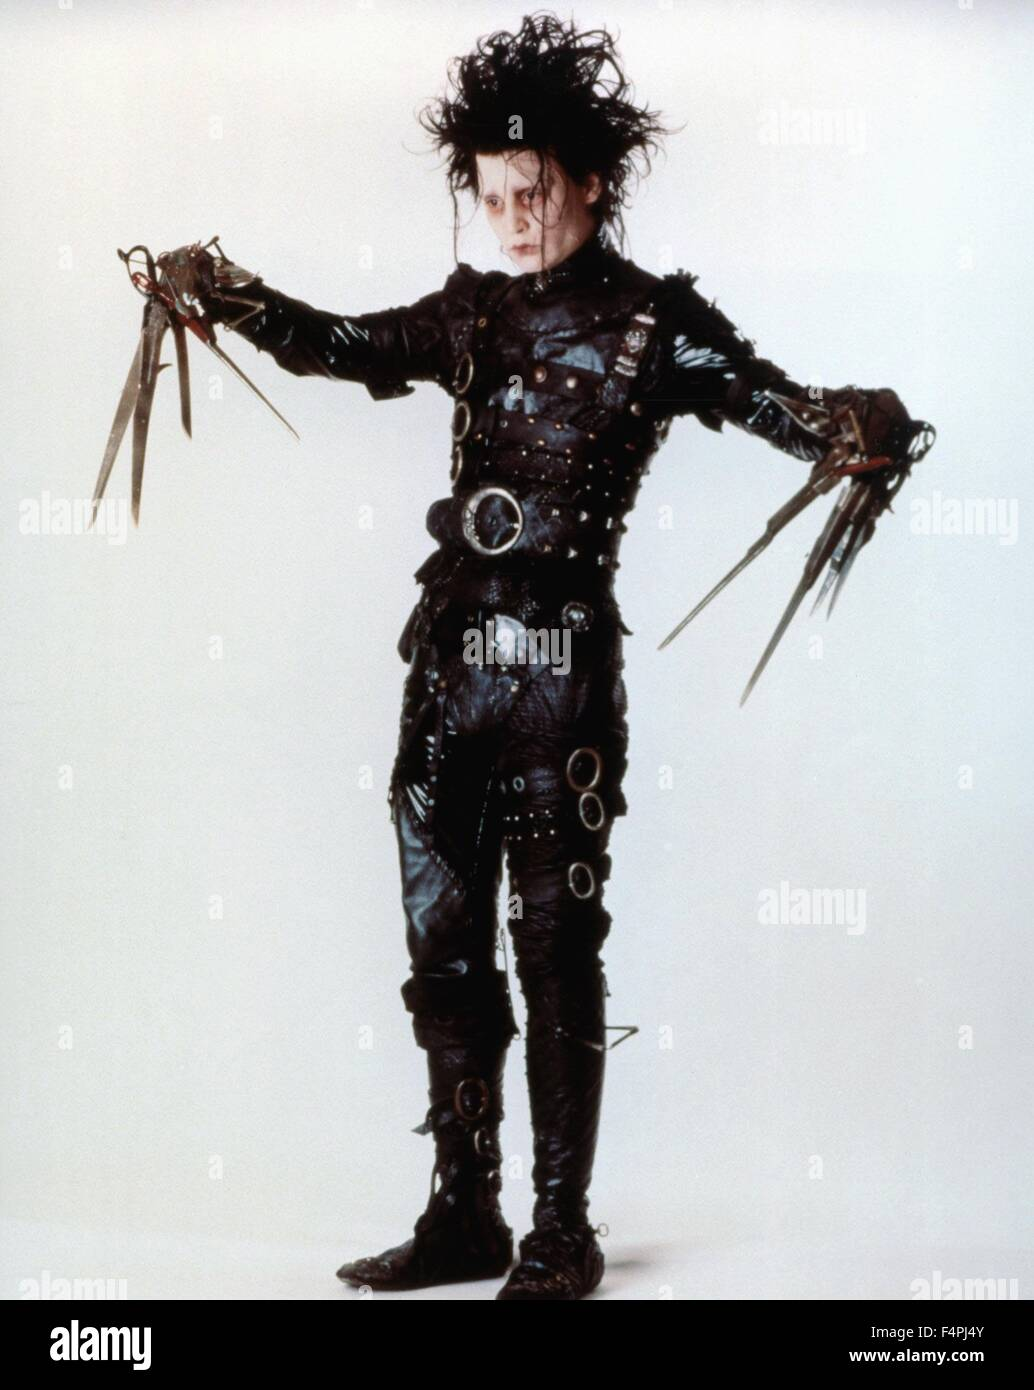 an analysis of edward scissor hands by tim burton Tim burton's edward scissorhands, which came out 25 years ago this week, is  more than just an updating of frankenstein it's the story of a.